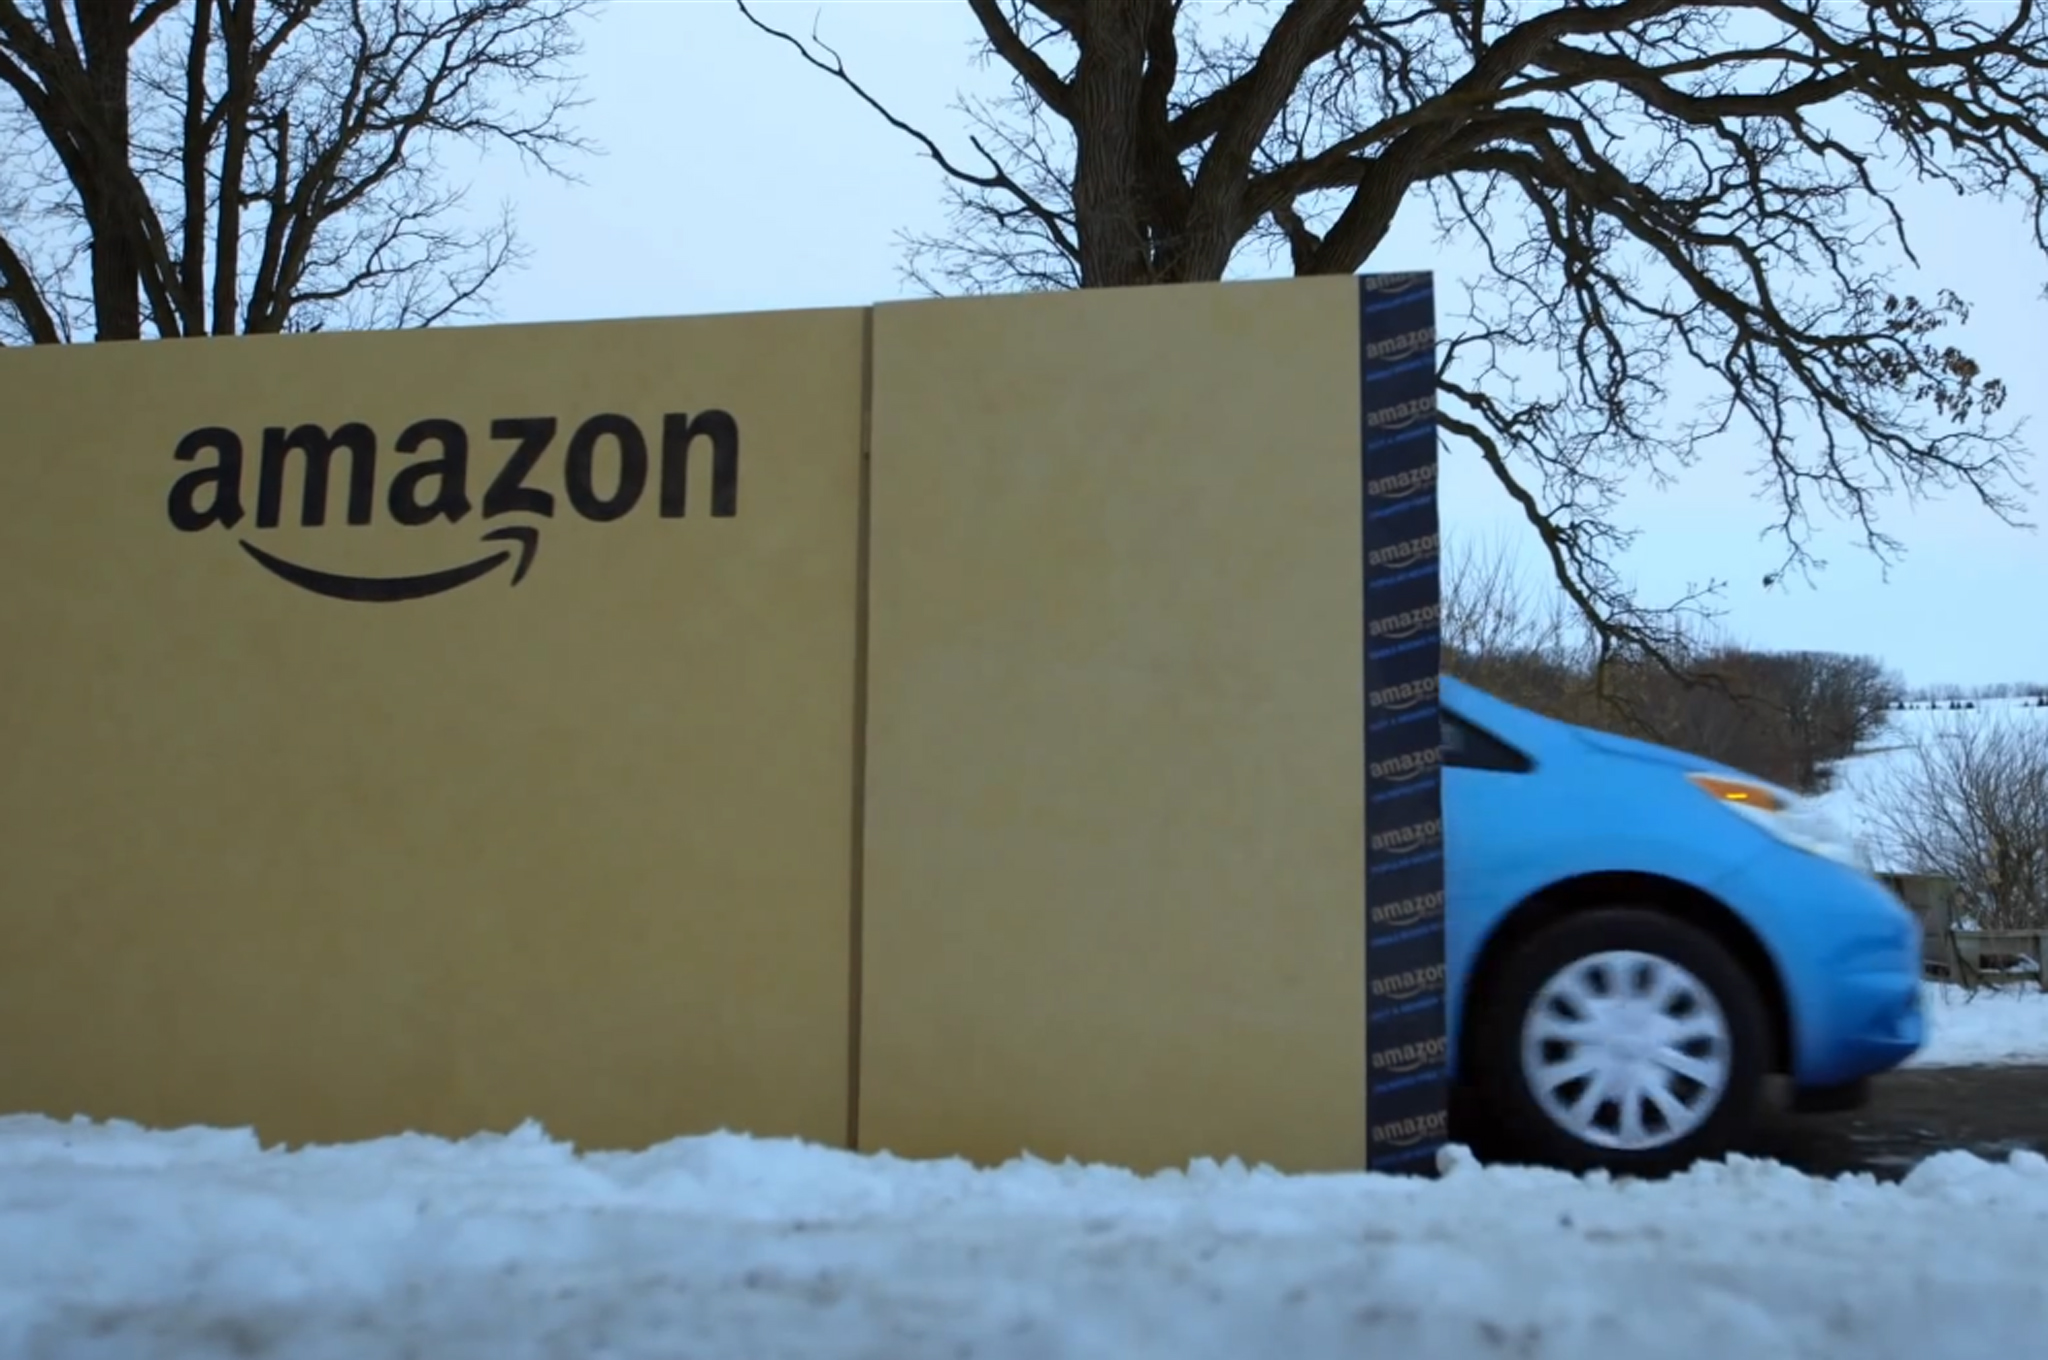 Nissan Versa Note Gets Delivered in Giant Amazon Box (W/Video)